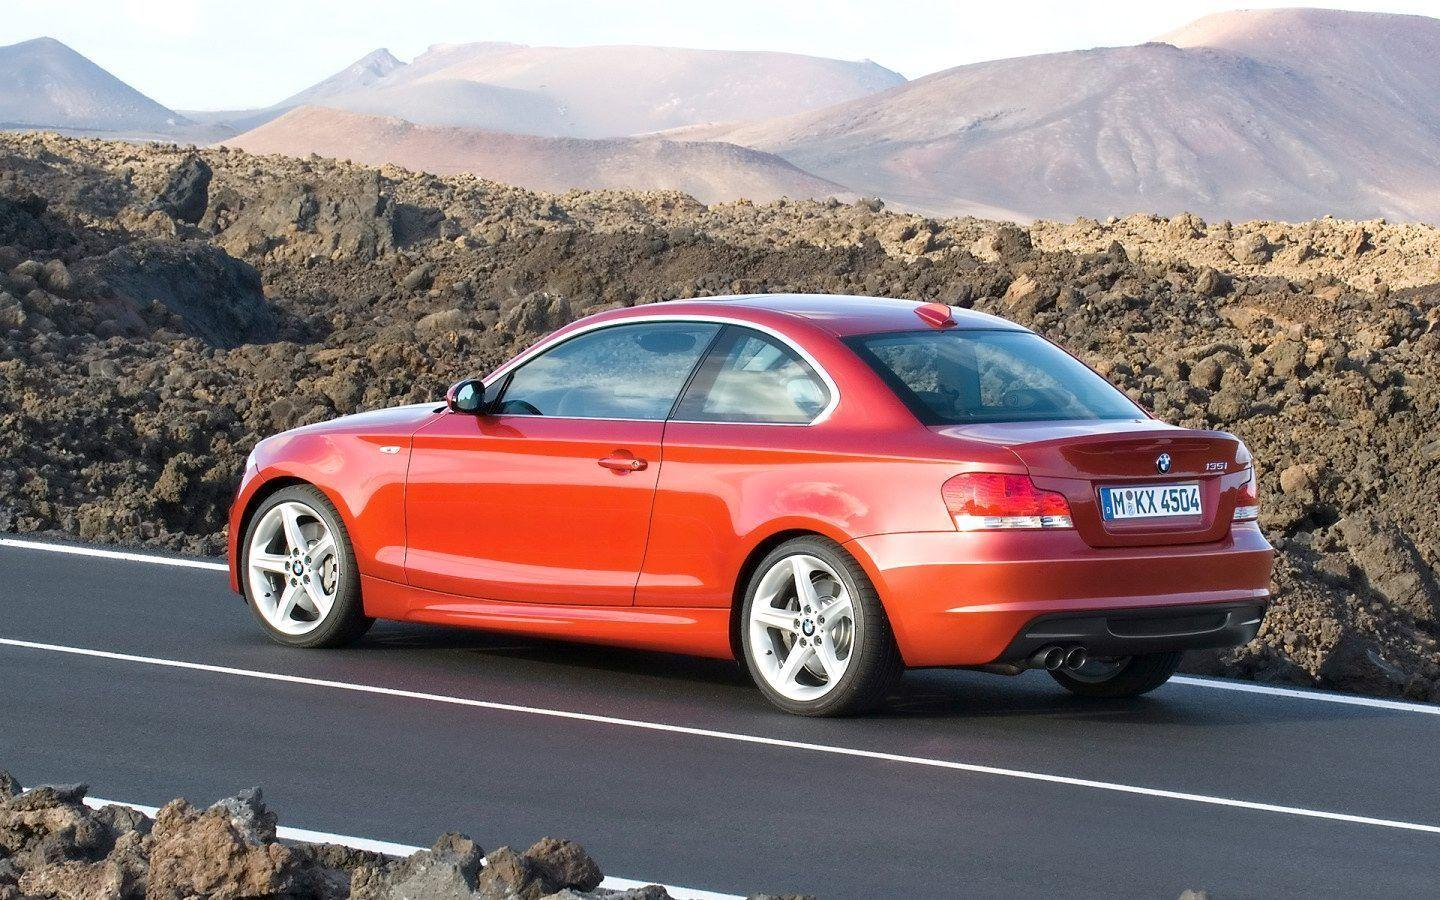 2008 BMW 1 Series Coupe Wallpaper 21 - 1440x900